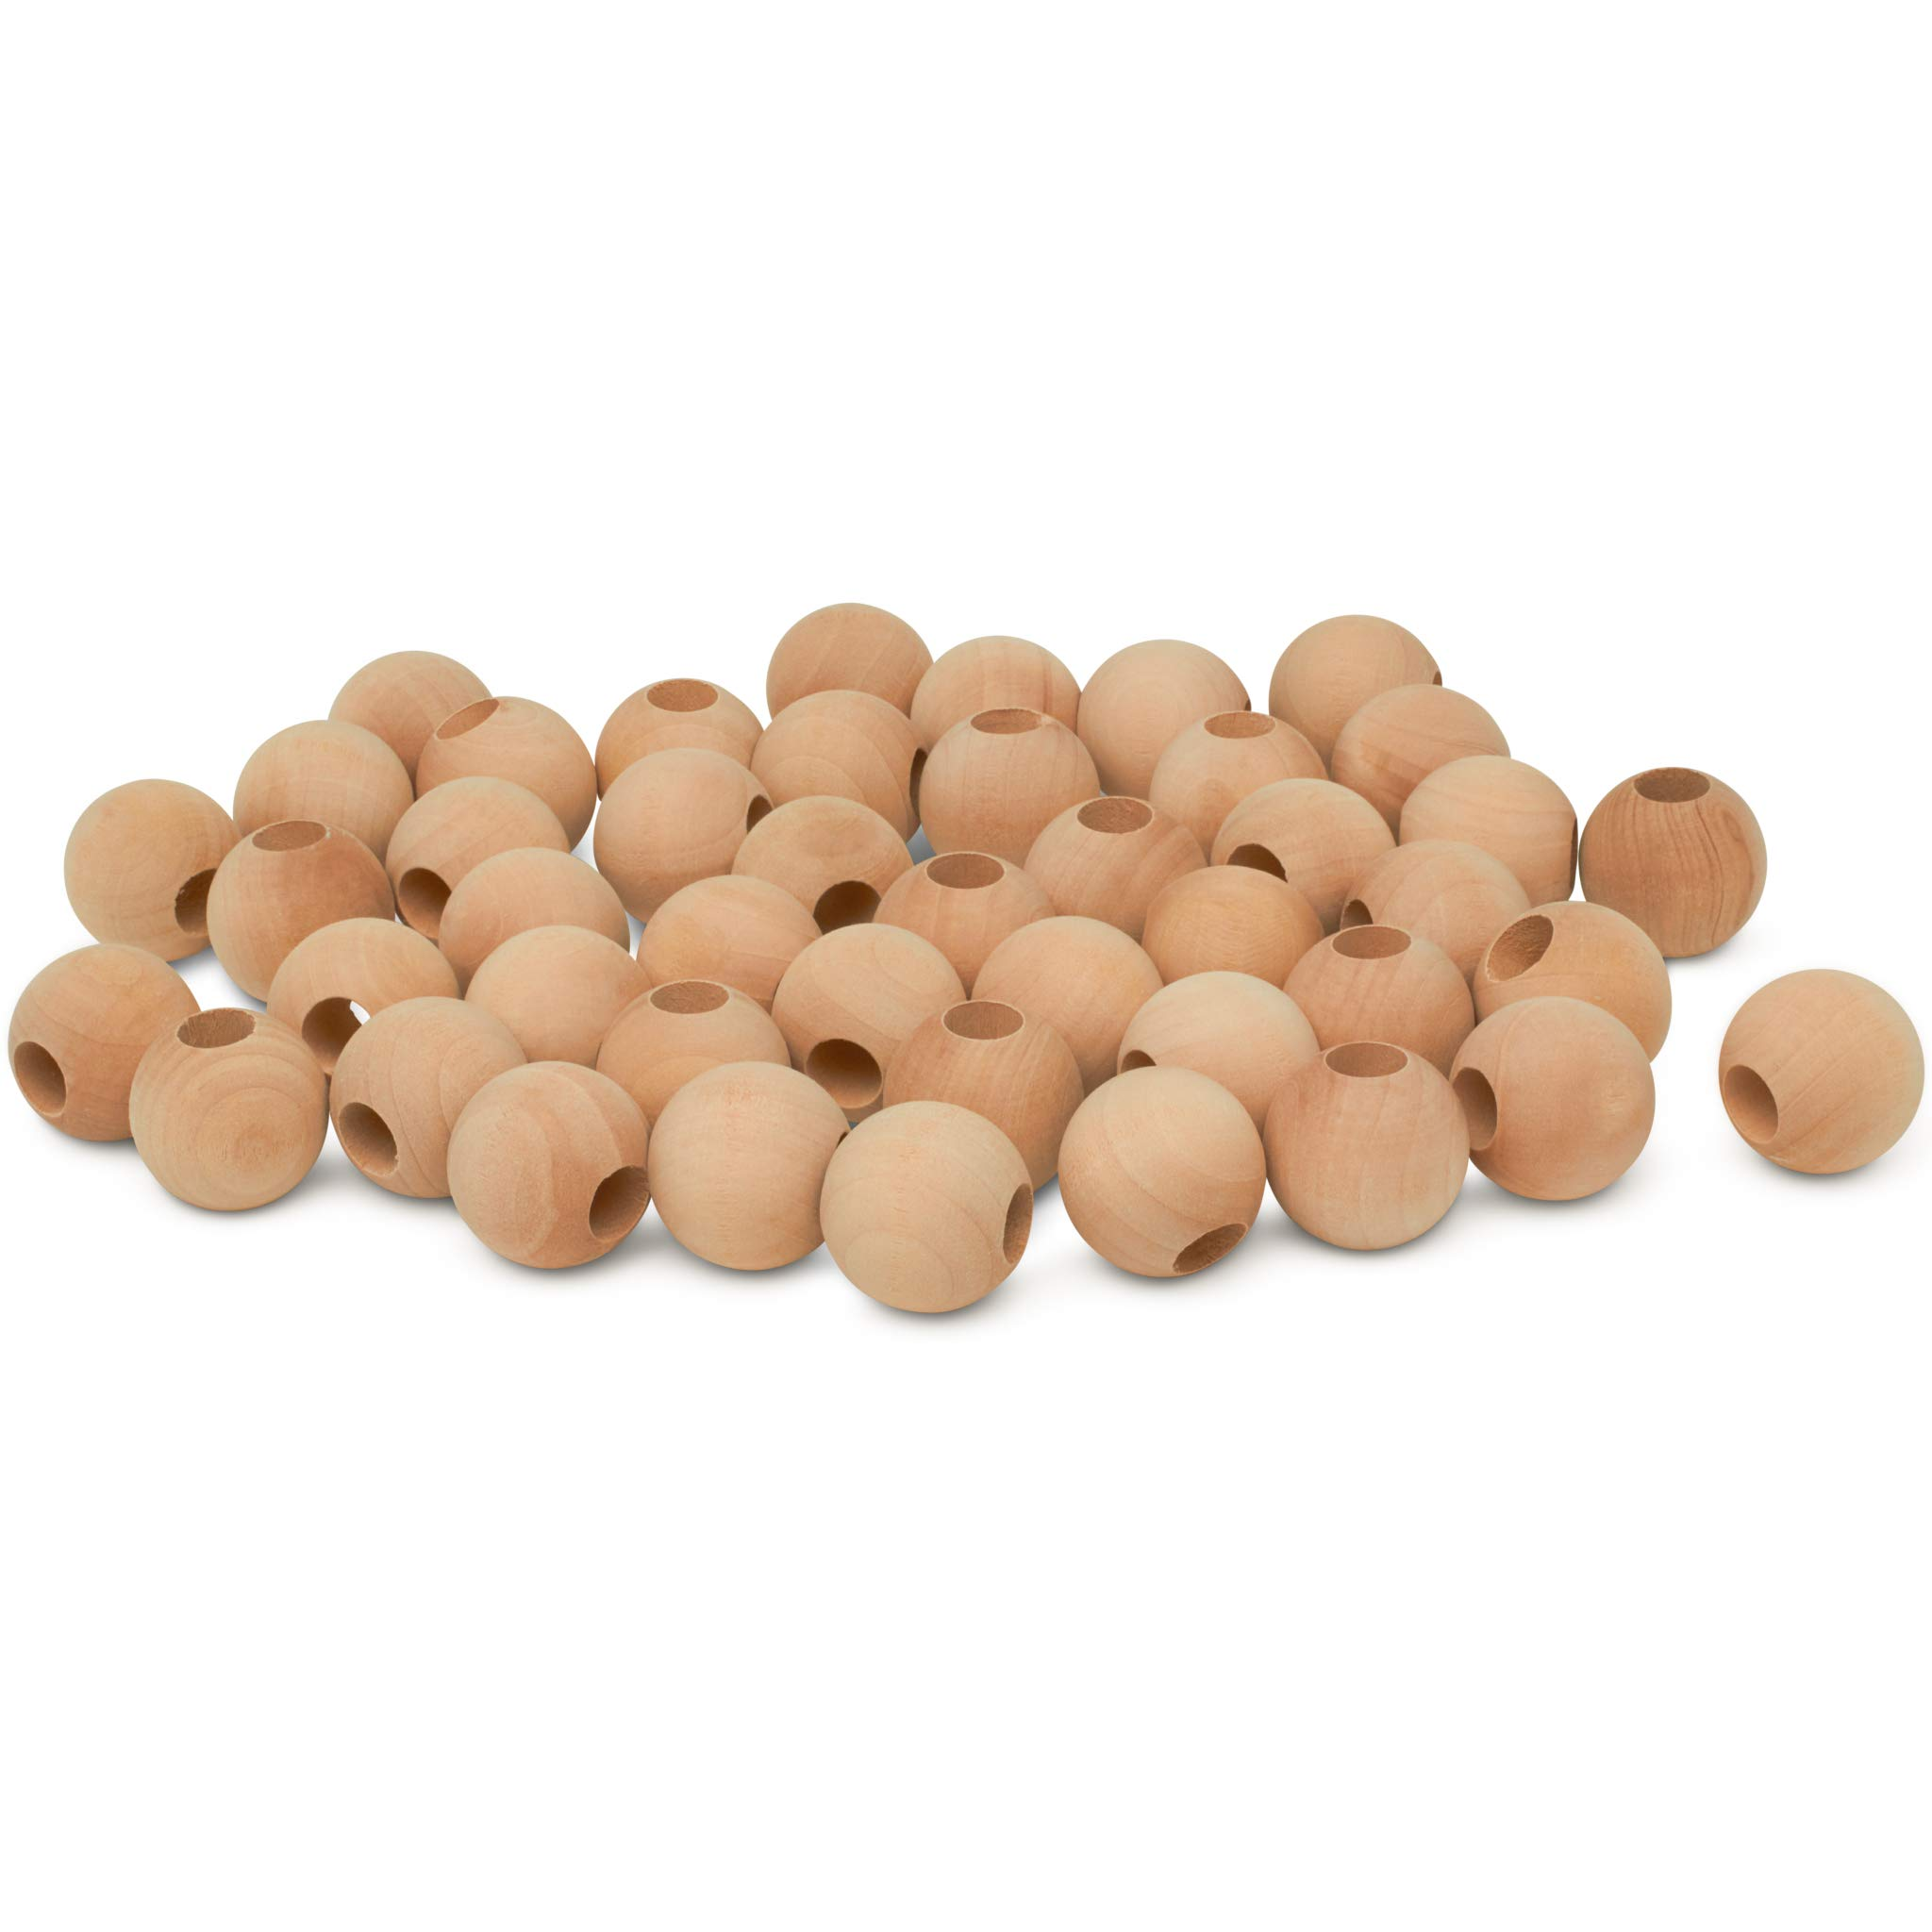 by Woodpeckers Pack of 50 Unfinished Round Wooden Bead Supplies Wooden Beads 1 inch x 3//8 Hole Easily Threads Paint and Stain Smooth Natural Finish